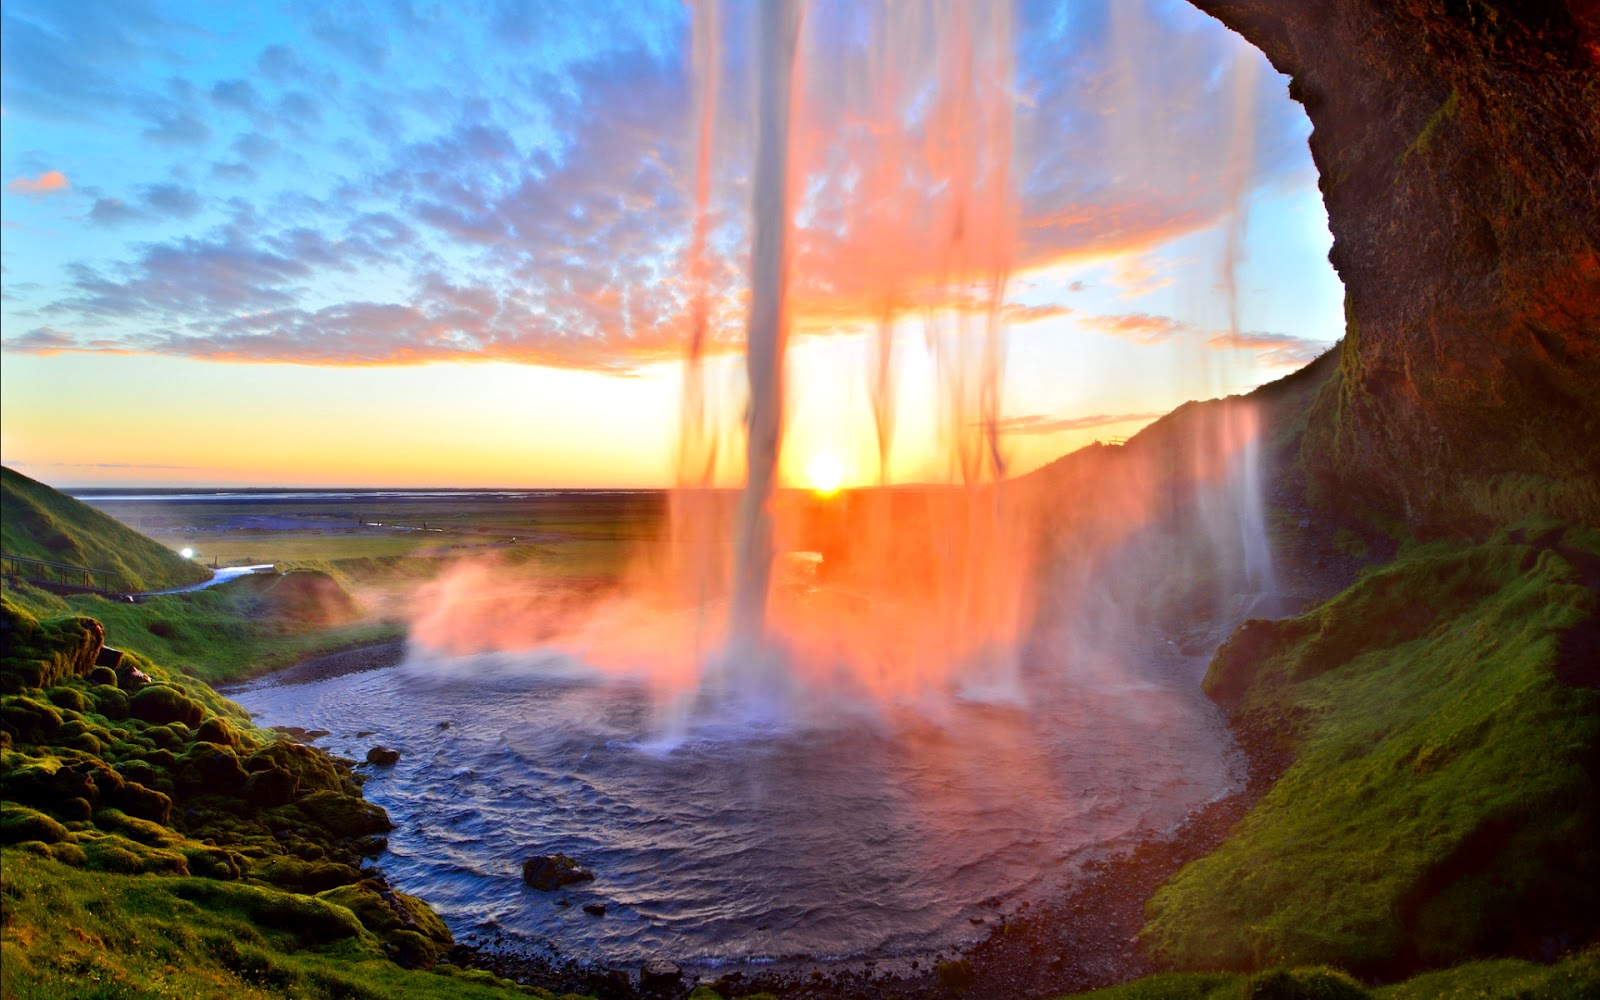 World Amazing And Natural Places To Get Experience Top